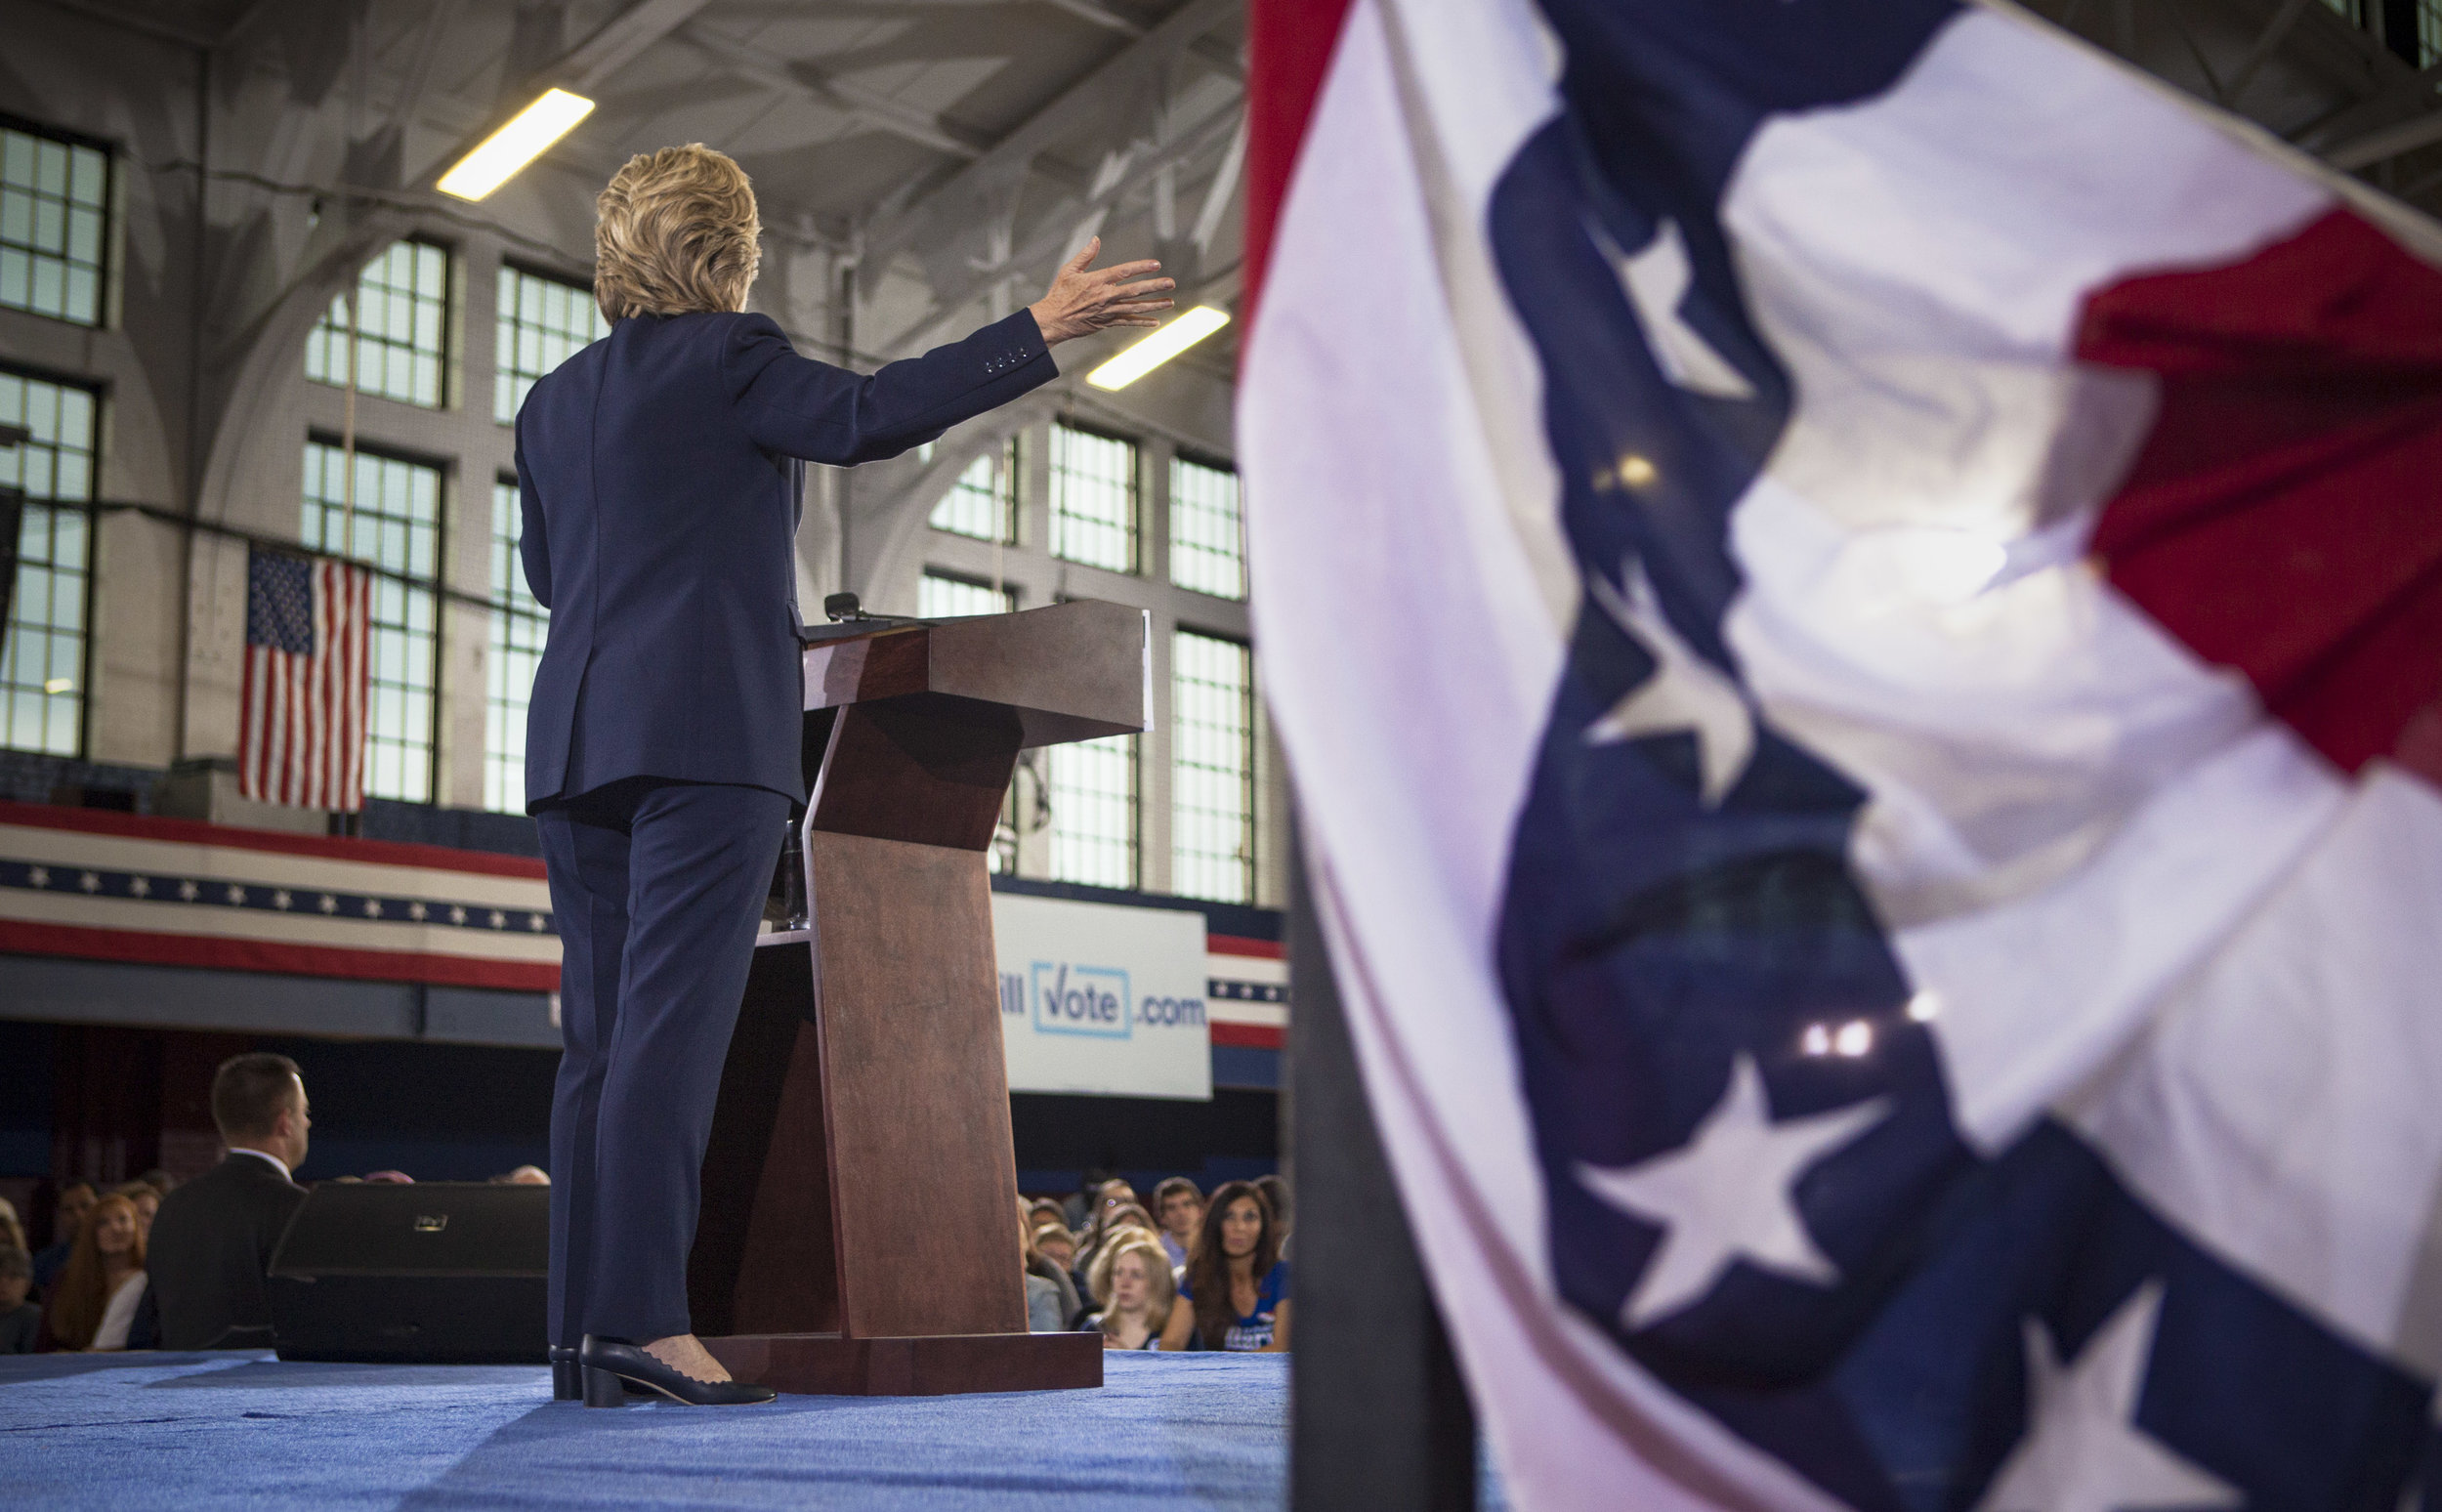 10032016_BJM_Hillary_Campaigns_in_Akron_Ohio_07.jpg